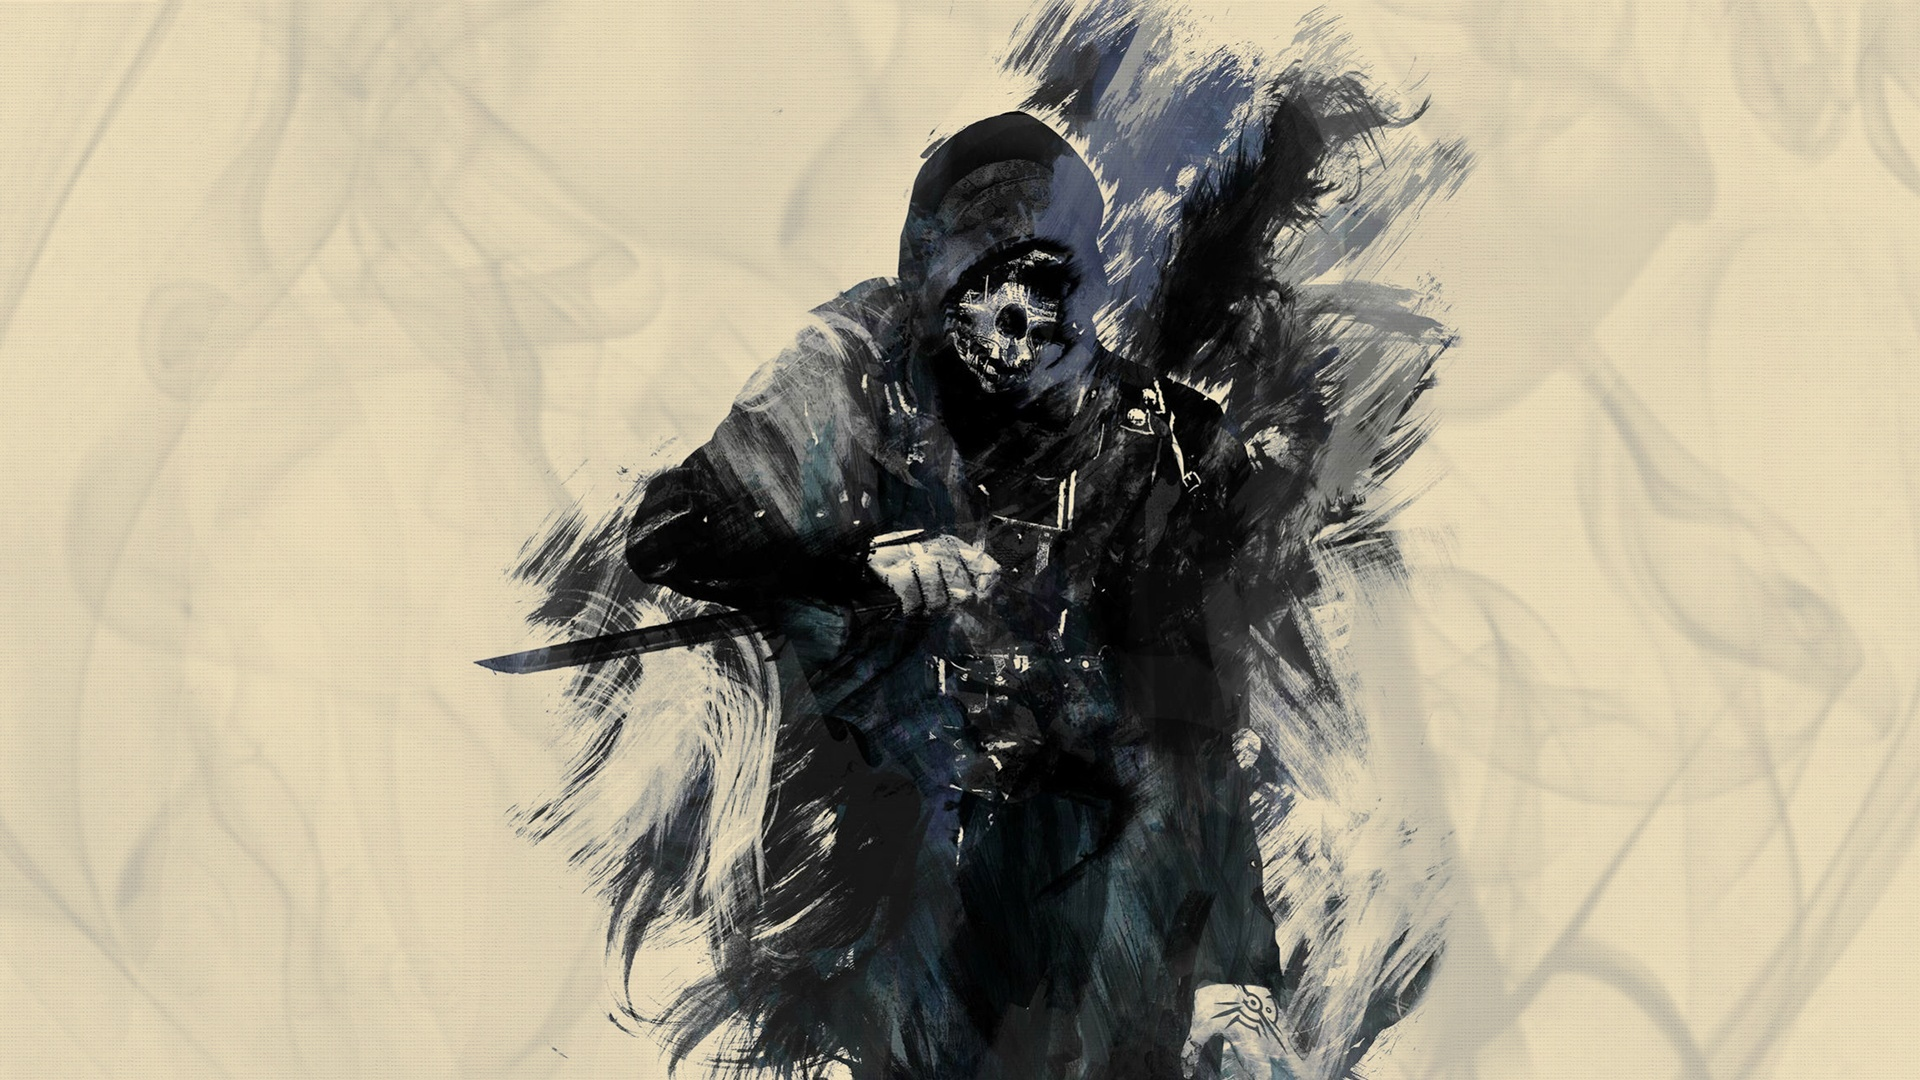 Description: The Wallpaper above is Dishonored art Wallpaper in Resolution 1920x1080. Choose your Resolution and Download Dishonored art Wallpaper